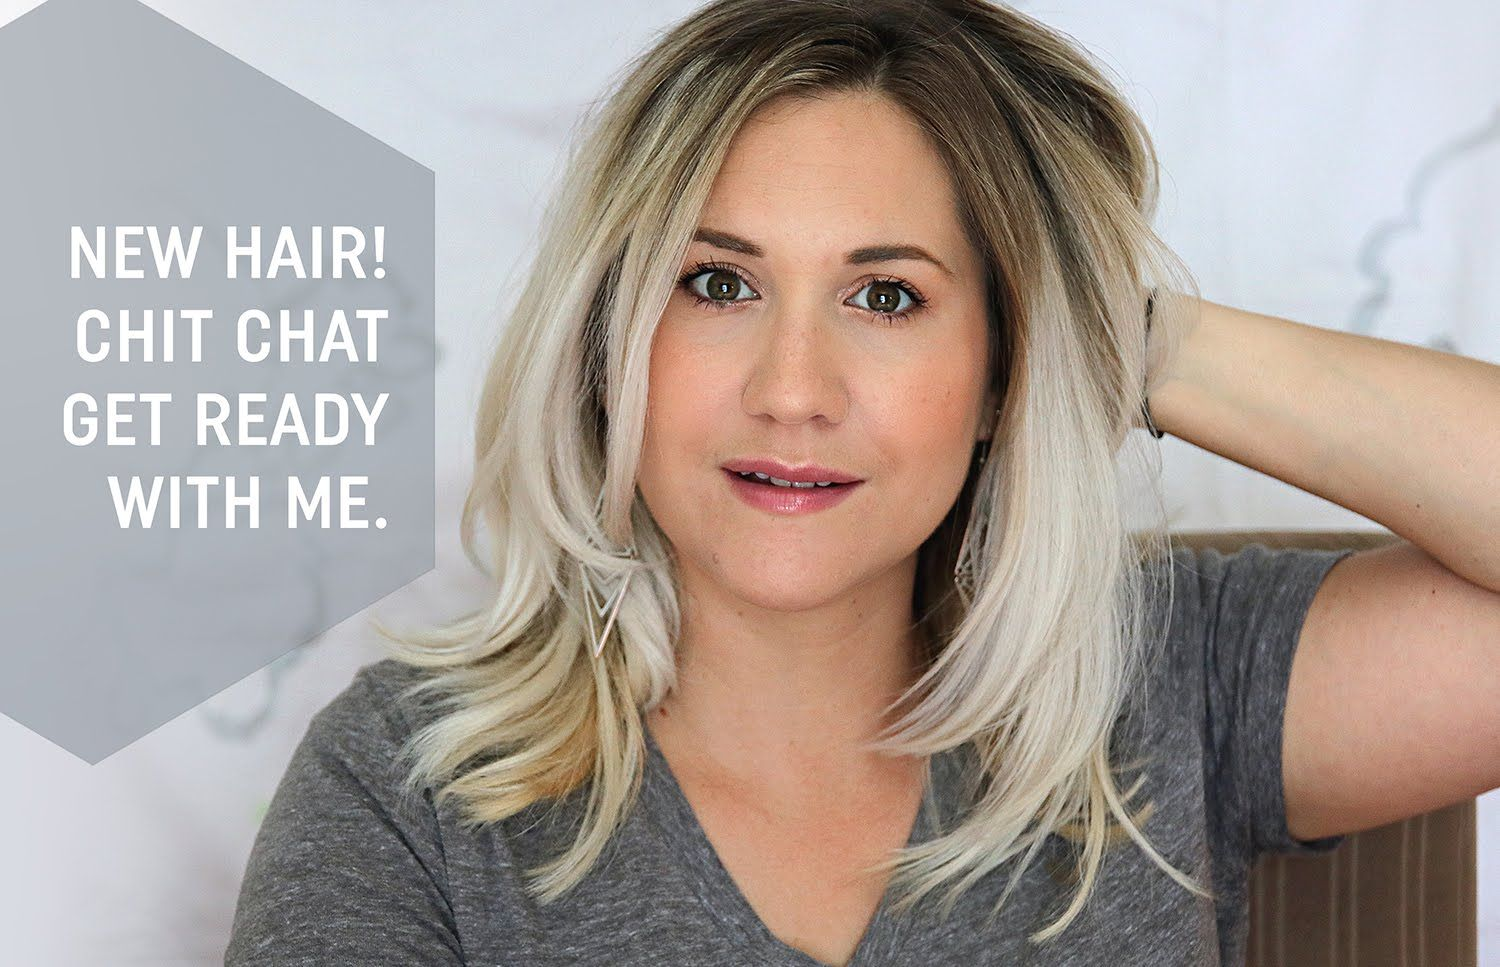 New Hair! Chit Chat | Get Ready With Me #blondehair